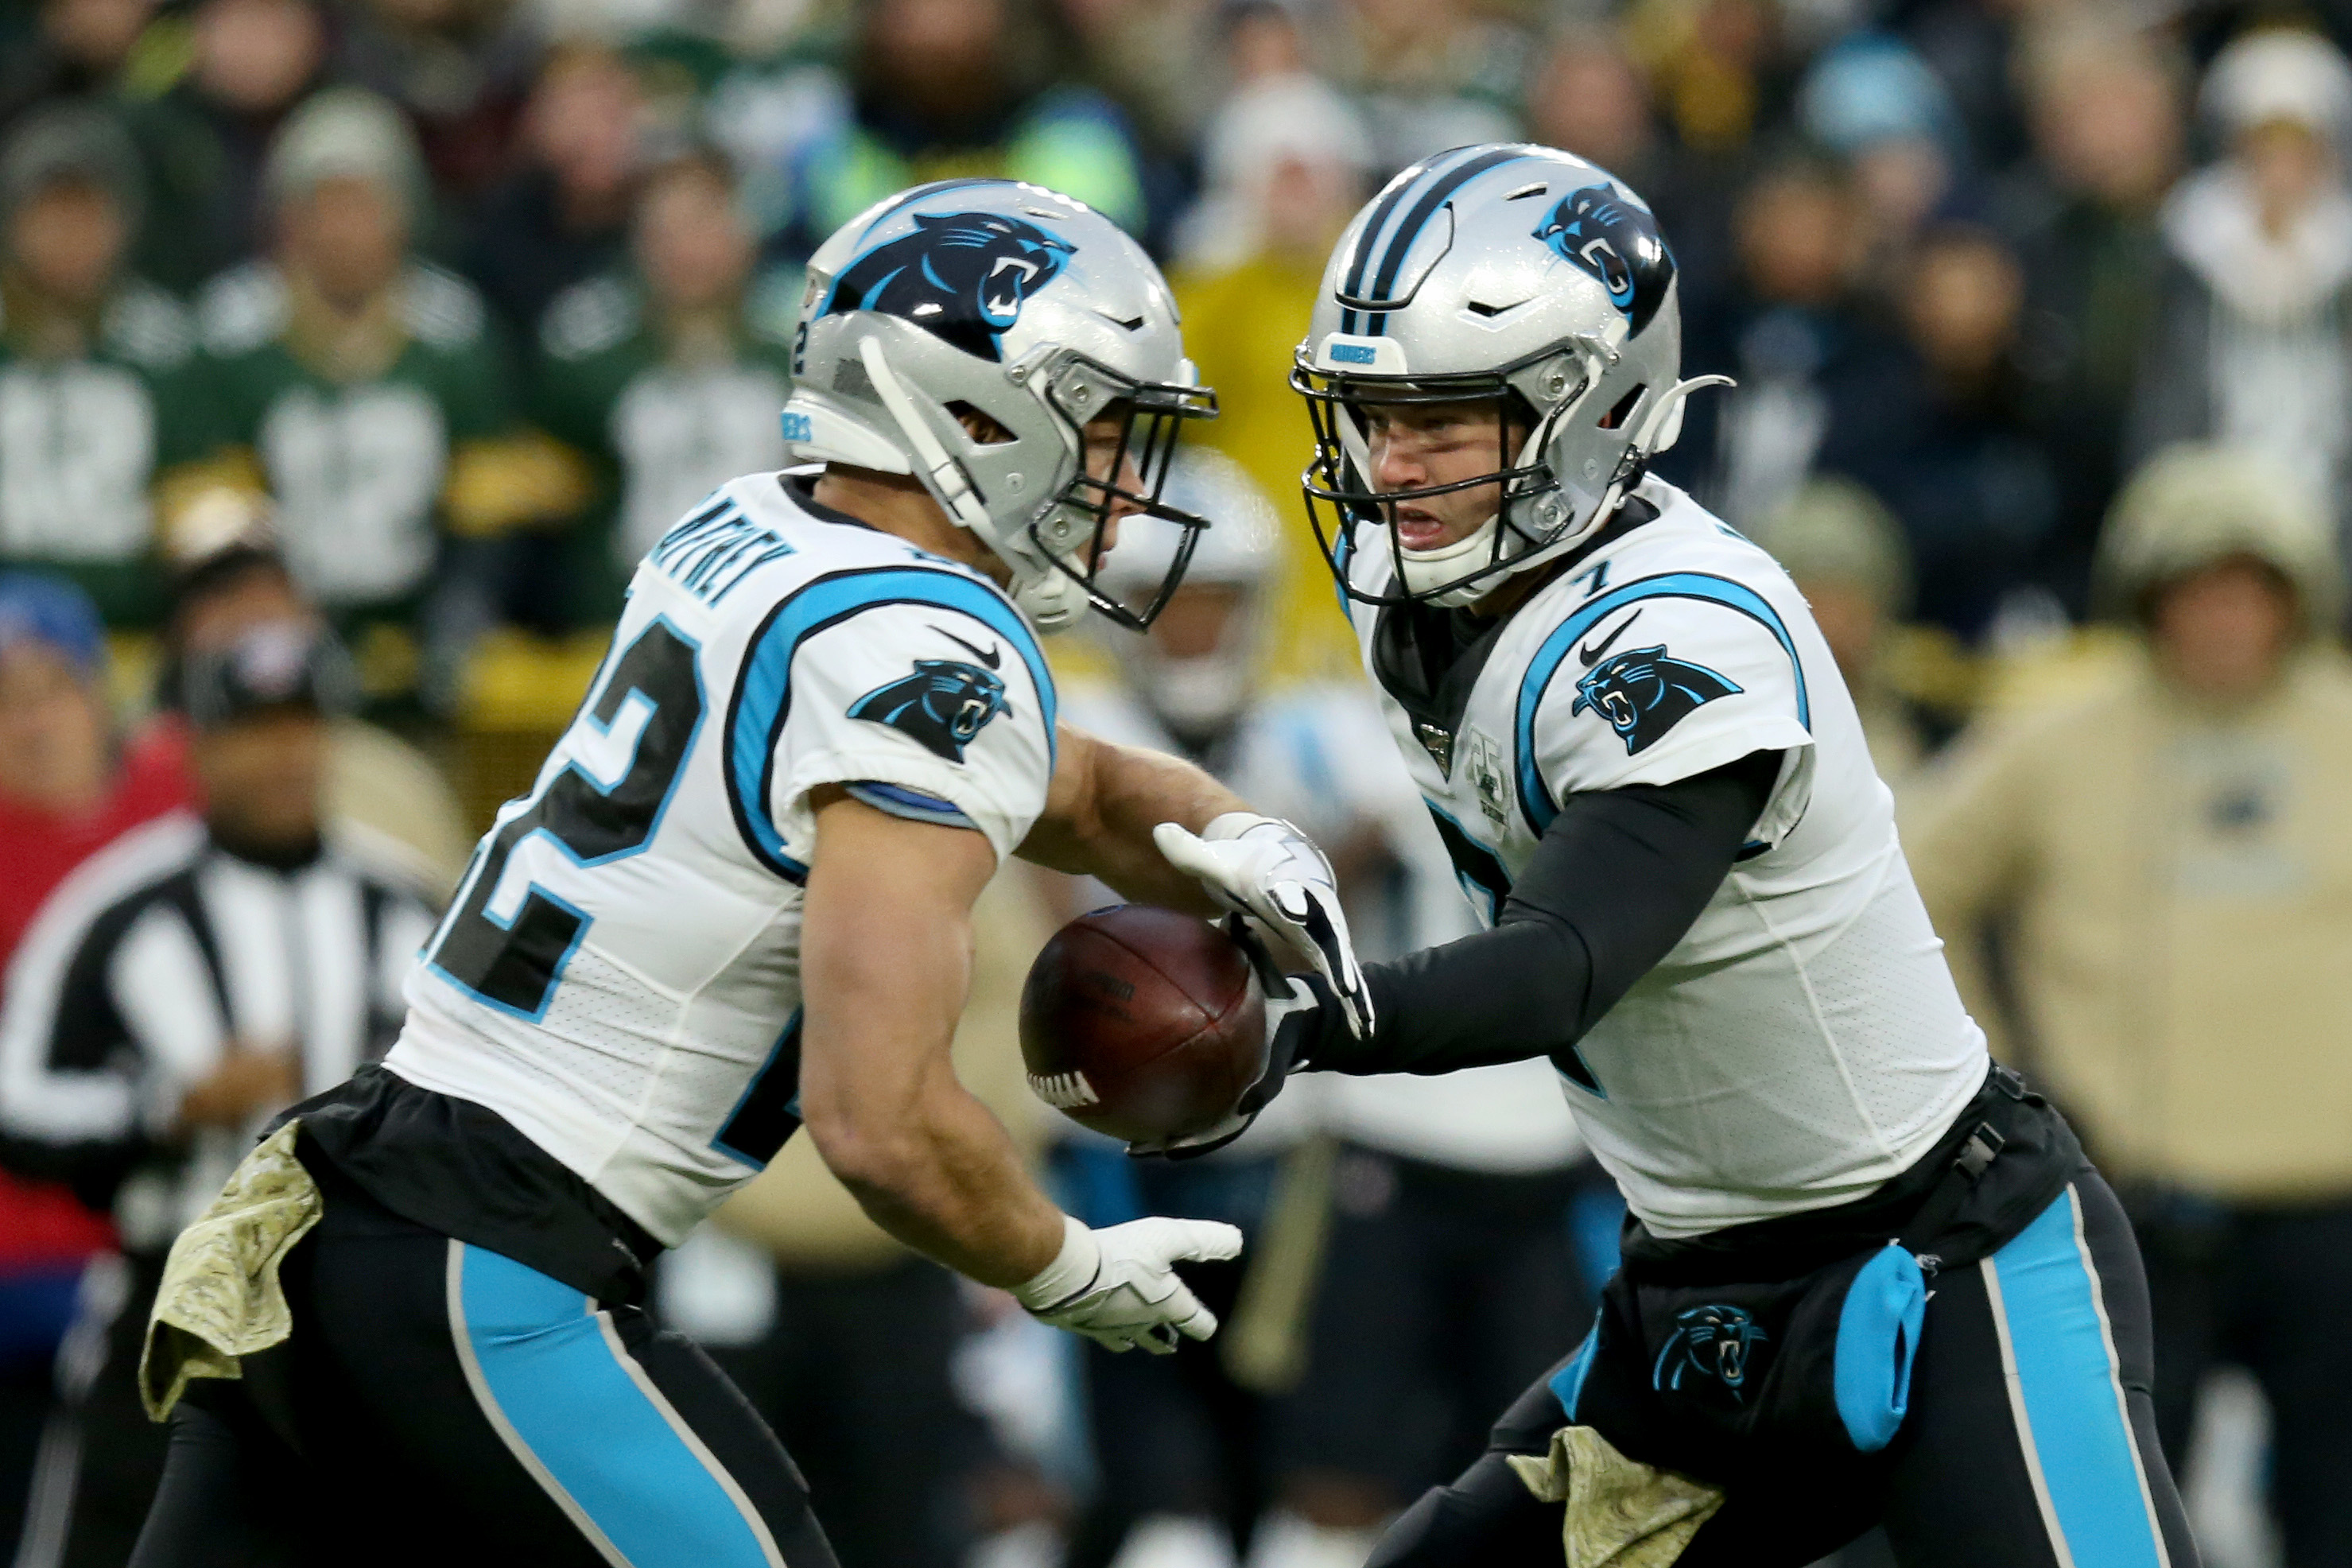 Kyle Allen of the Carolina Panthers hands the ball off to Christian McCaffrey against the Green Bay Packers during the first quarter in the game at Lambeau Field on November 10, 2019 in Green Bay, Wisconsin.